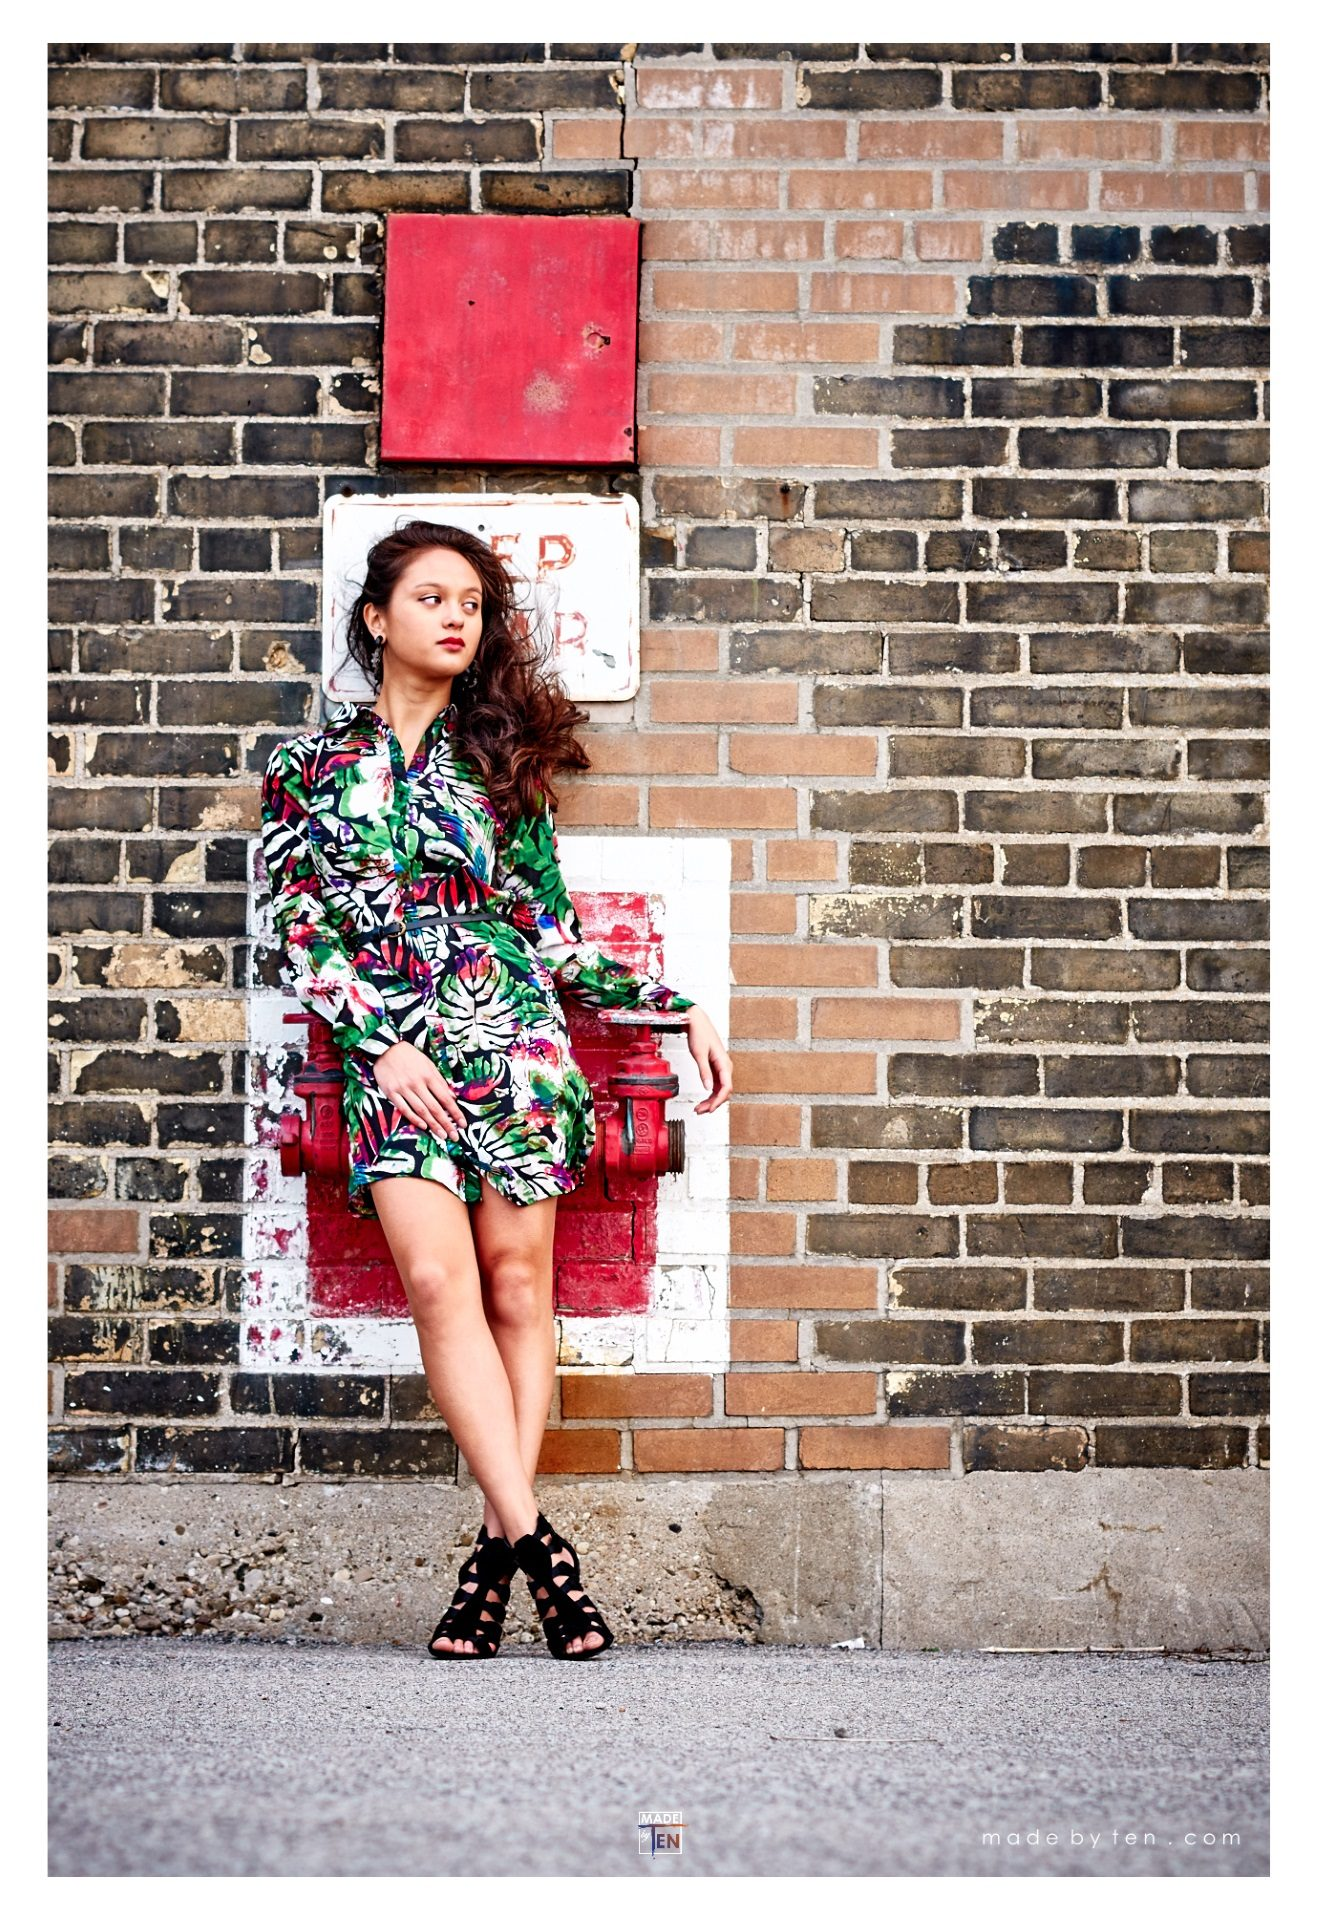 Hydrant Fashion Editorial - GTA Women Lifestyle Photography